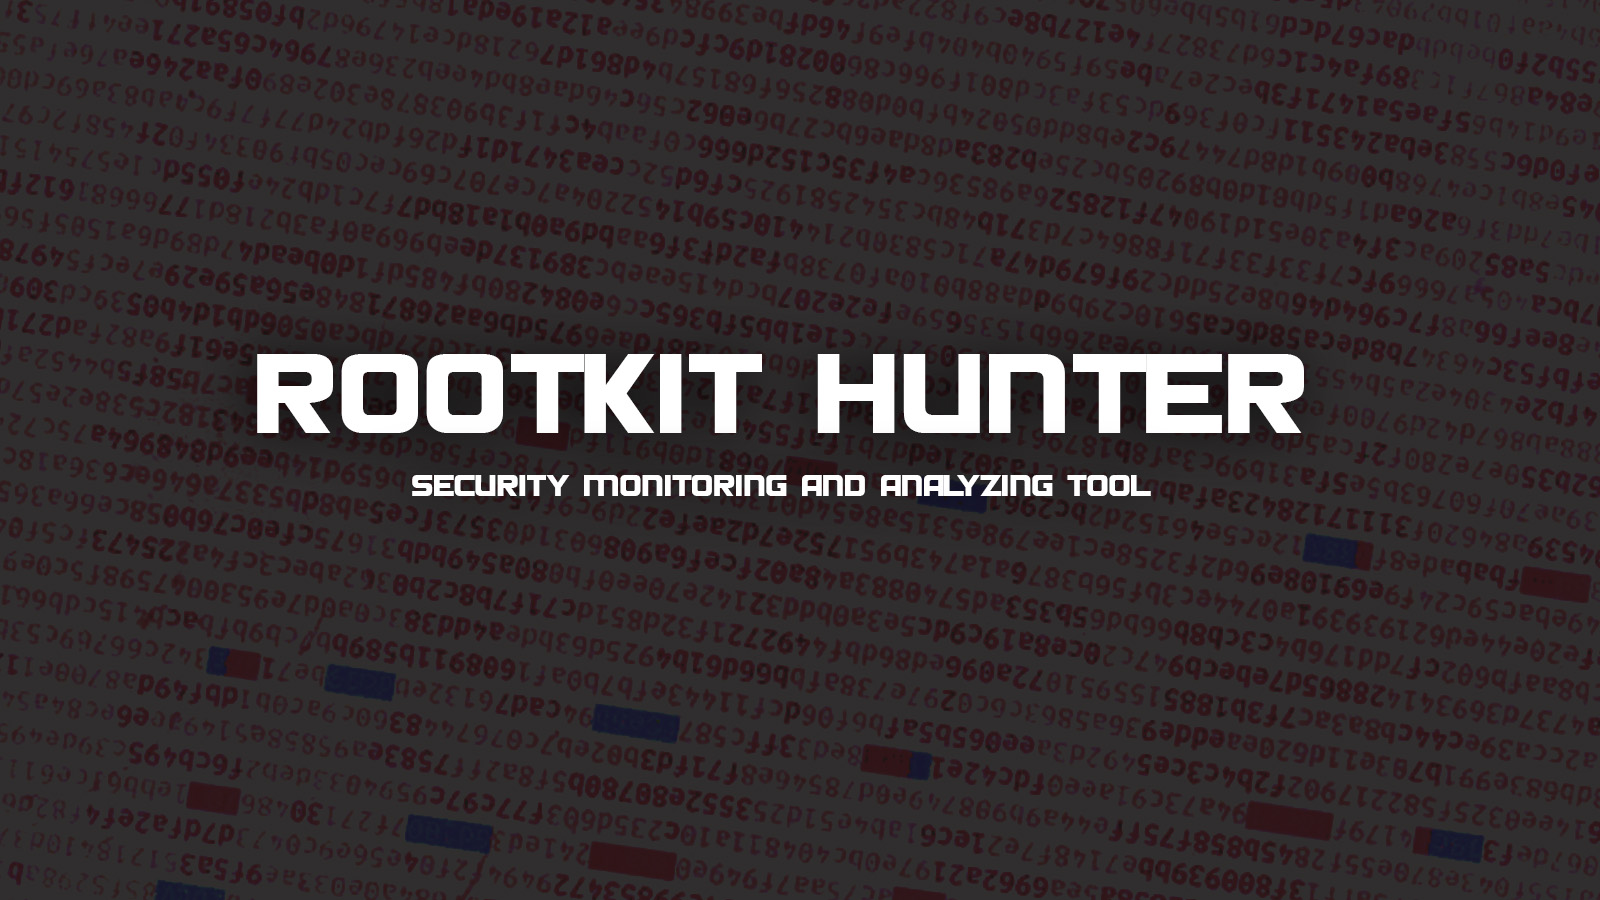 Rootkit Hunter - Security Monitoring and Analyzing Tool